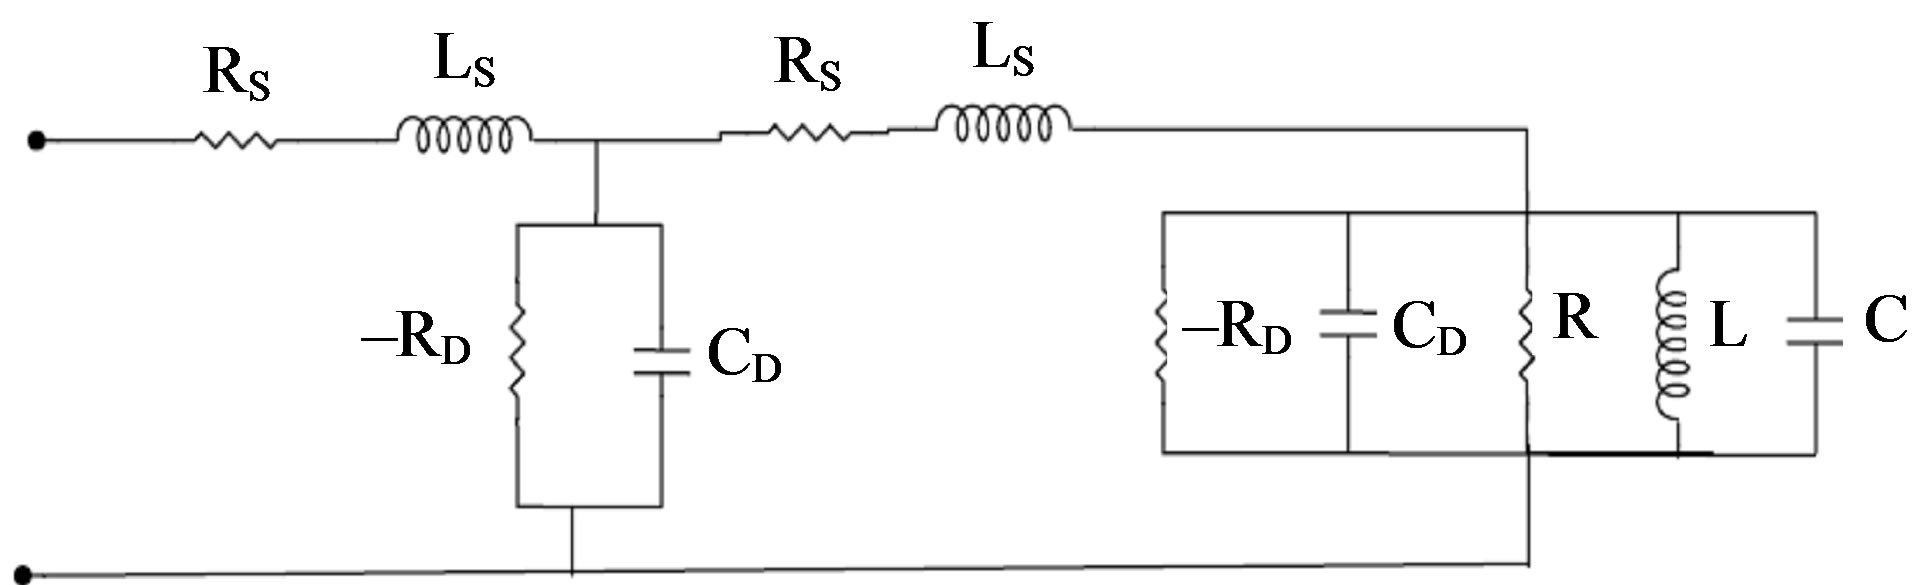 Tunnel Diode Loaded Microstrip Antenna With Parasitic Elements Diodes In Circuits Equivalent Circuit Of Symmetrically Integrated Rmsa